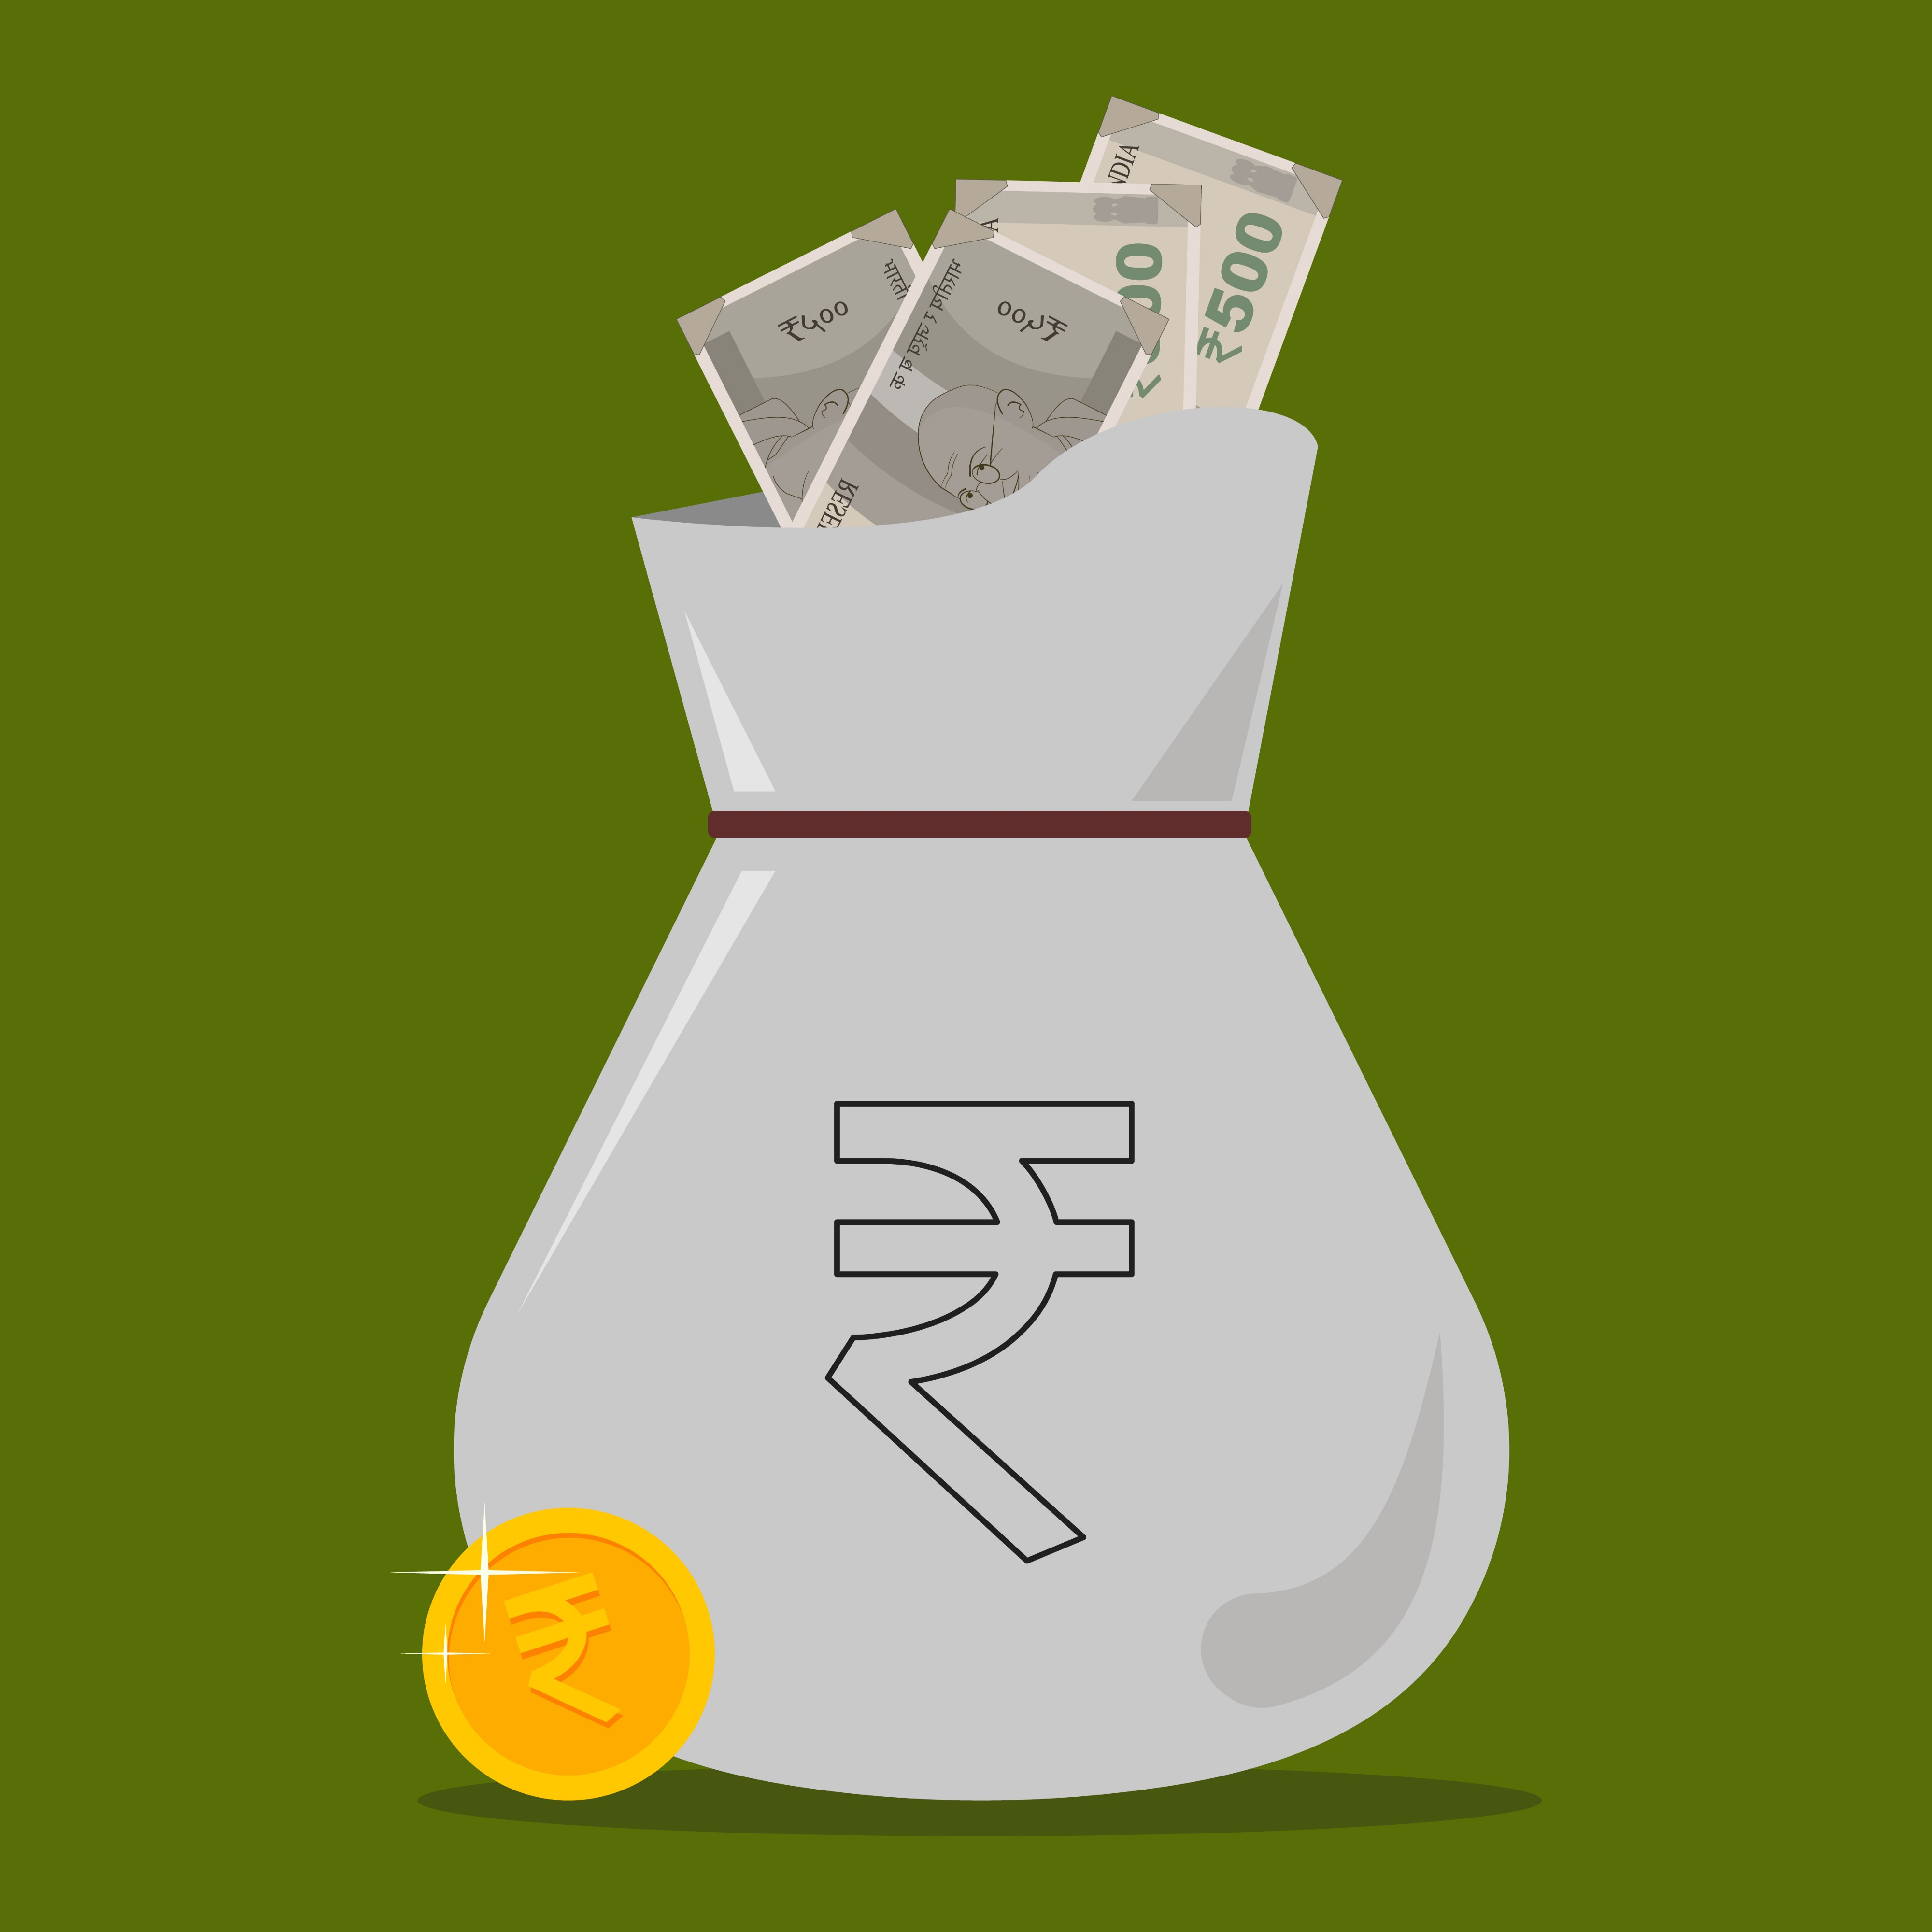 Bag of Indian money with Indian rupee sign in green background. The image indicates investment in fixed income investment options.